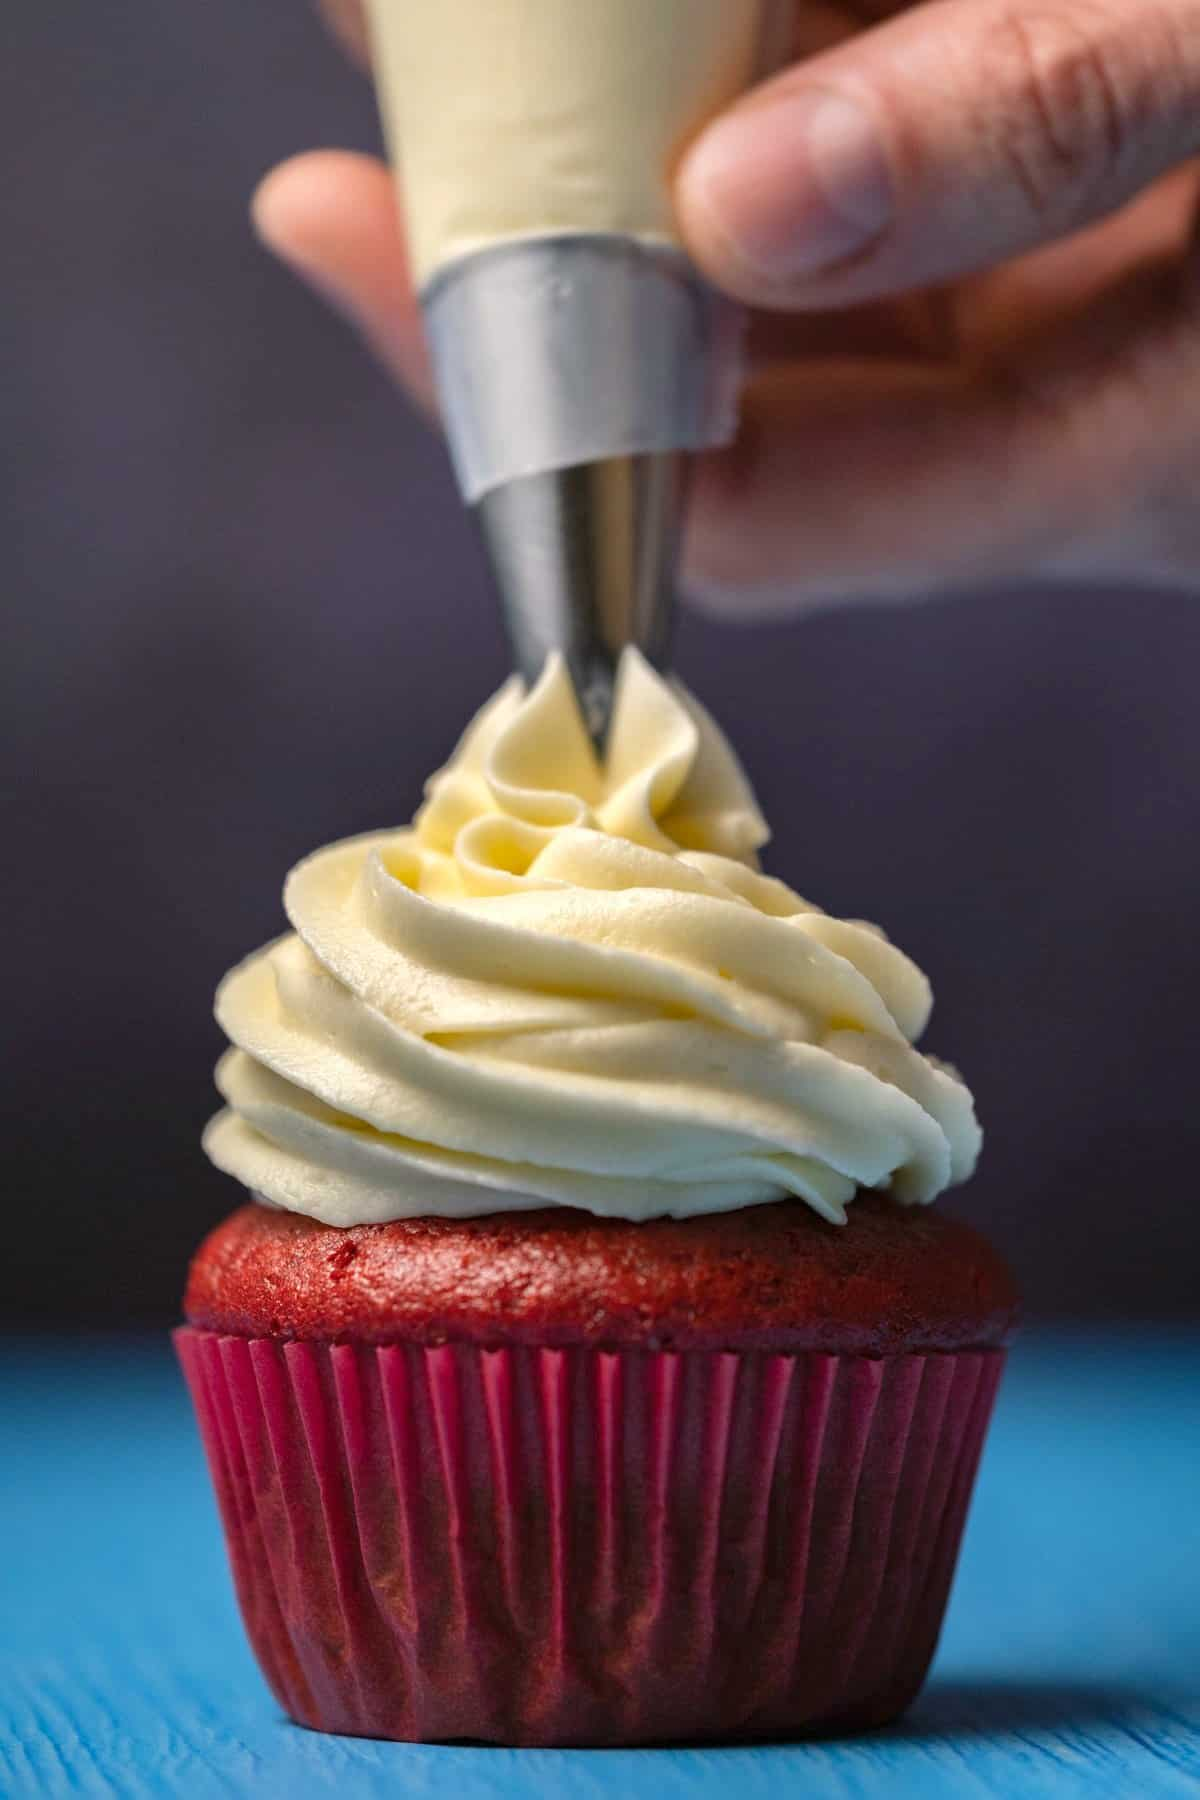 Frosting piping onto a cupcake.